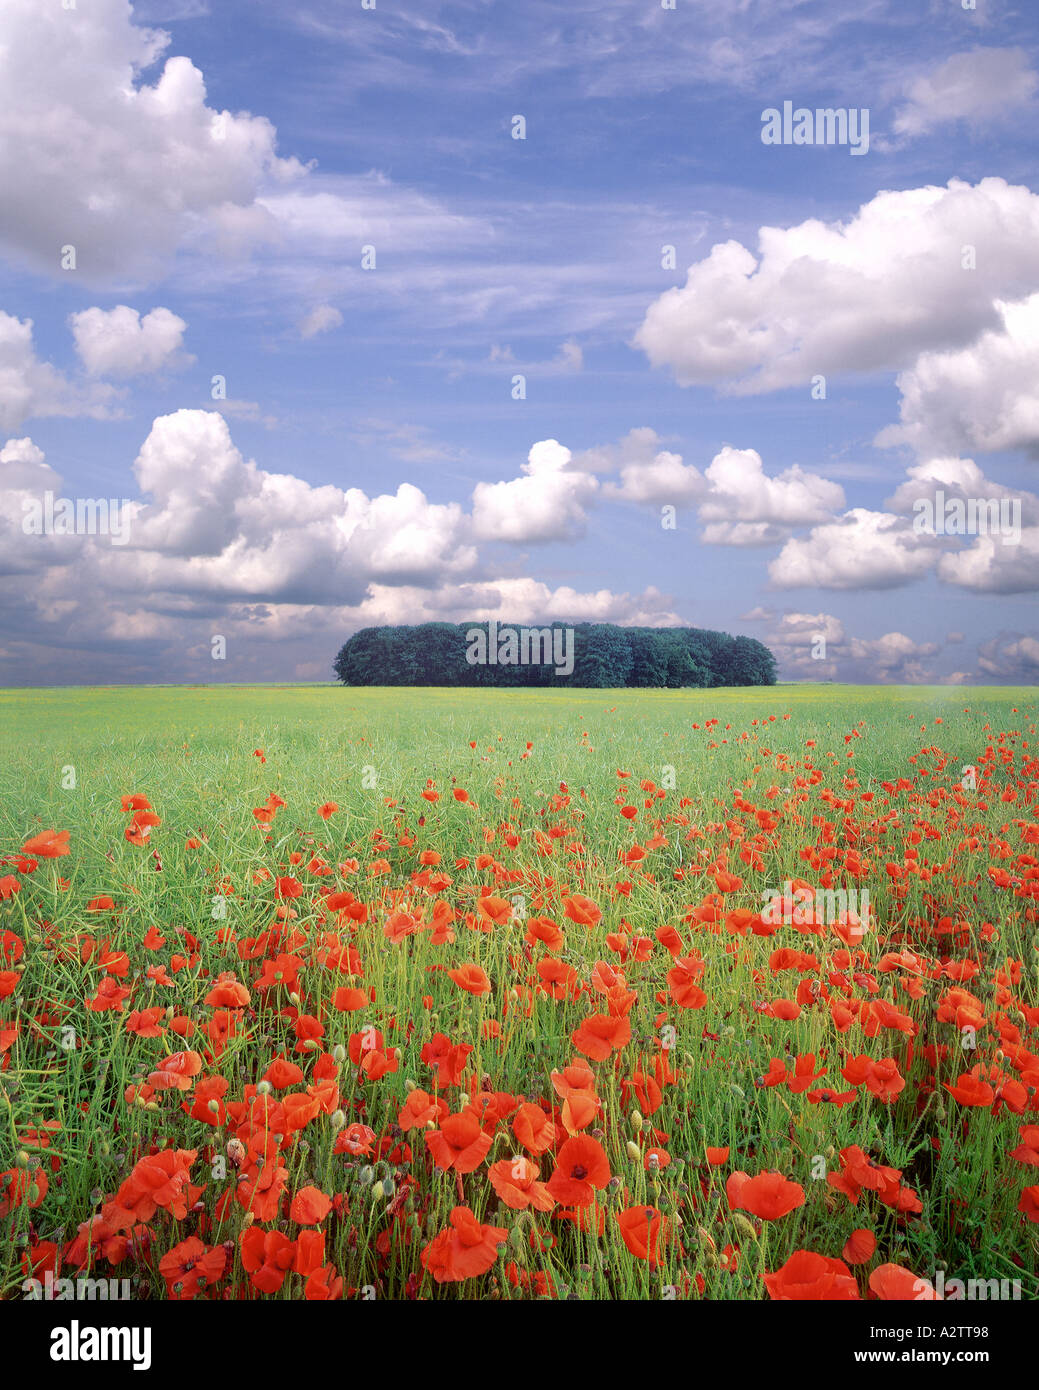 GB - GLOUCESTERSHIRE: Poppyfield in the Cotswolds Stock Photo